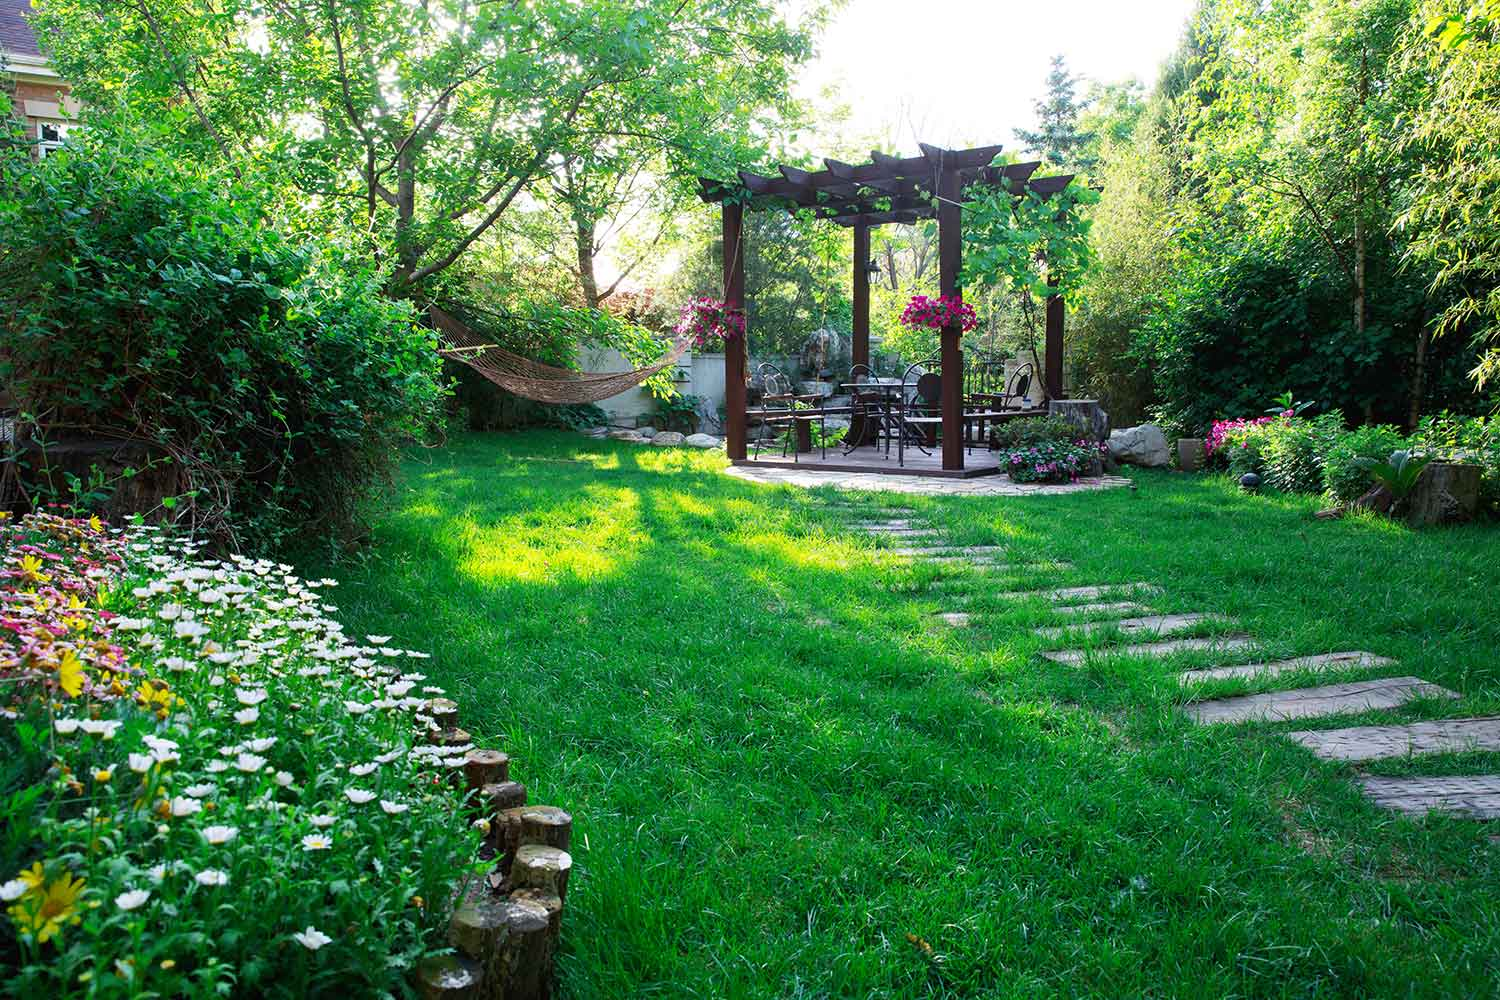 Plants that could cause problems in your backyard | Better ...